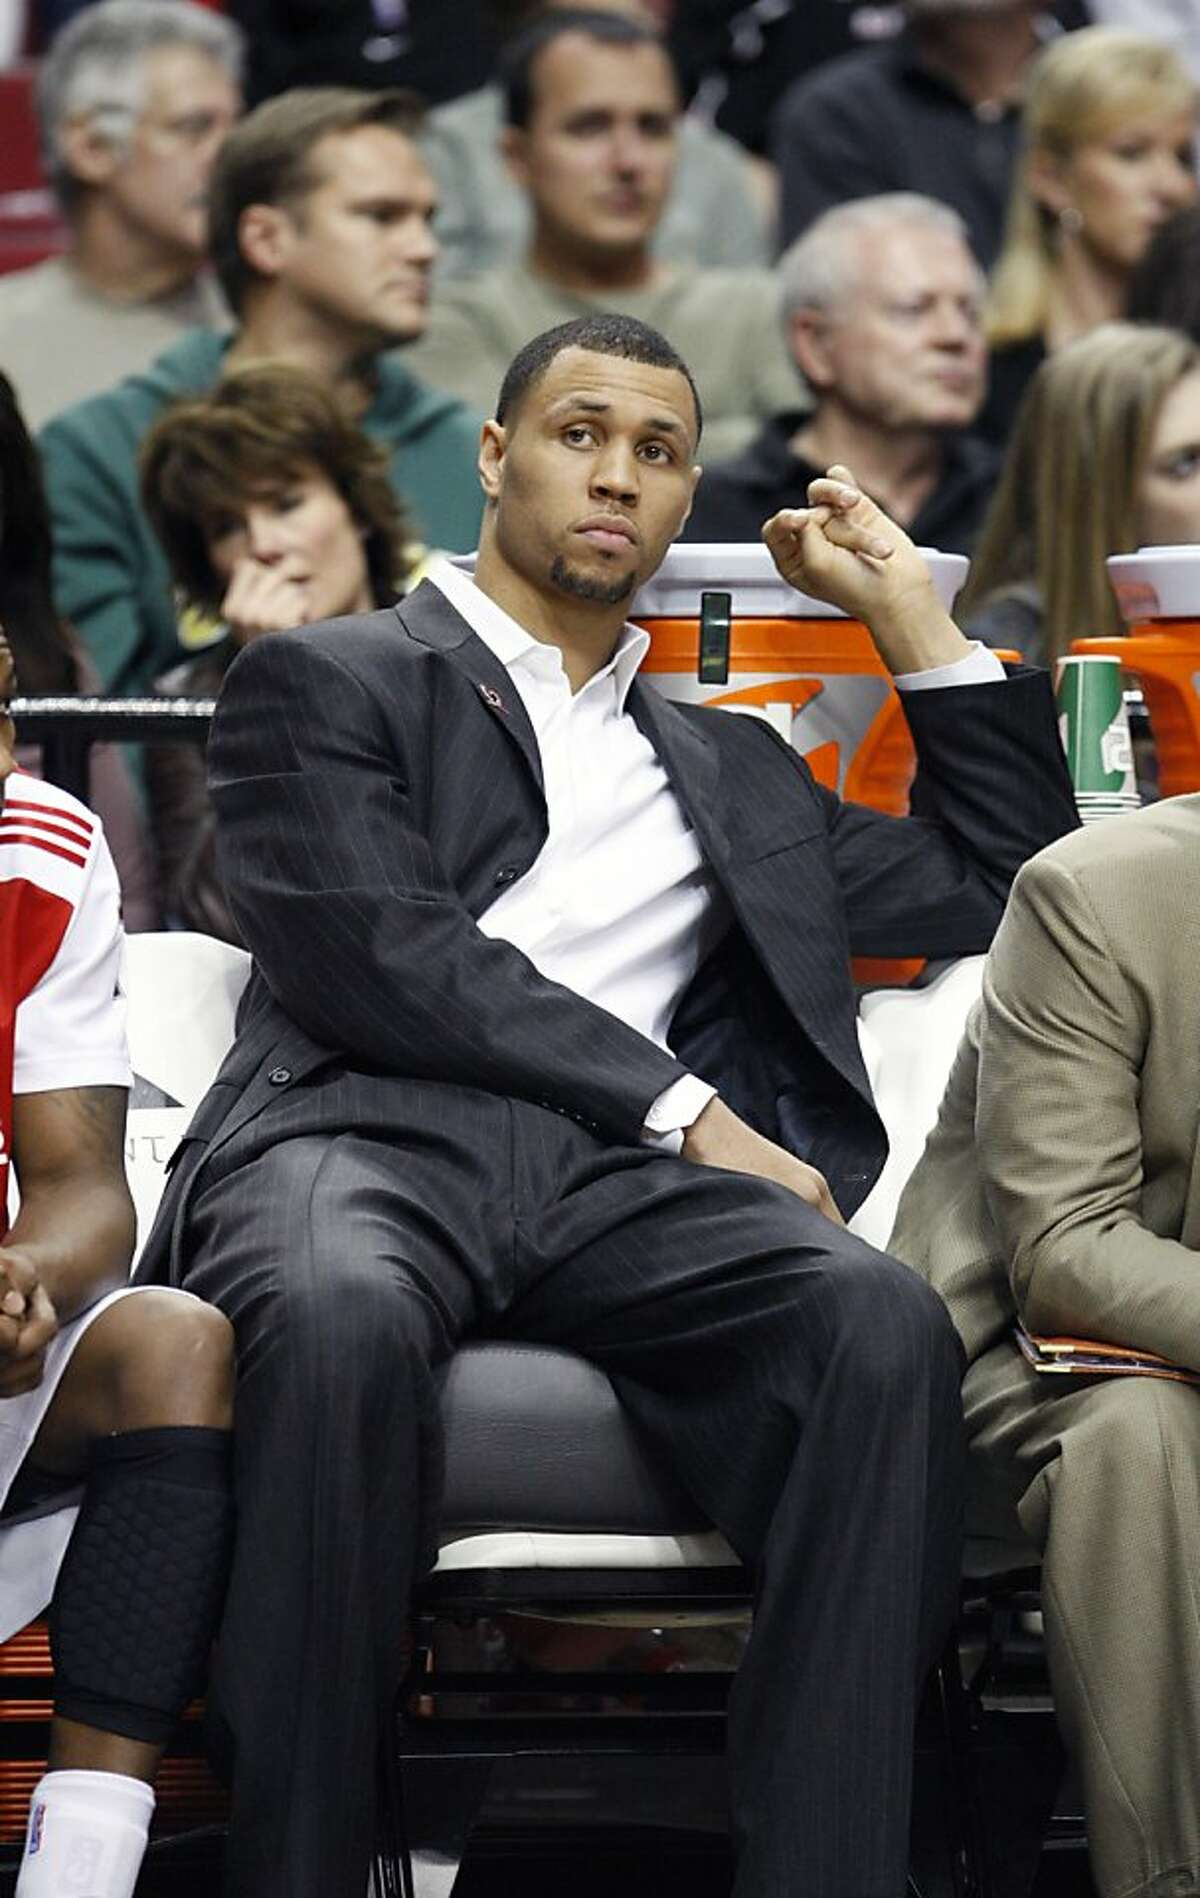 Portland Trail Blazers' Brandon Roy sits on the bench in the second quarter of an NBA basketball game with the Indiana Pacers Saturday, Jan. 22, 2011, in Portland, Ore.